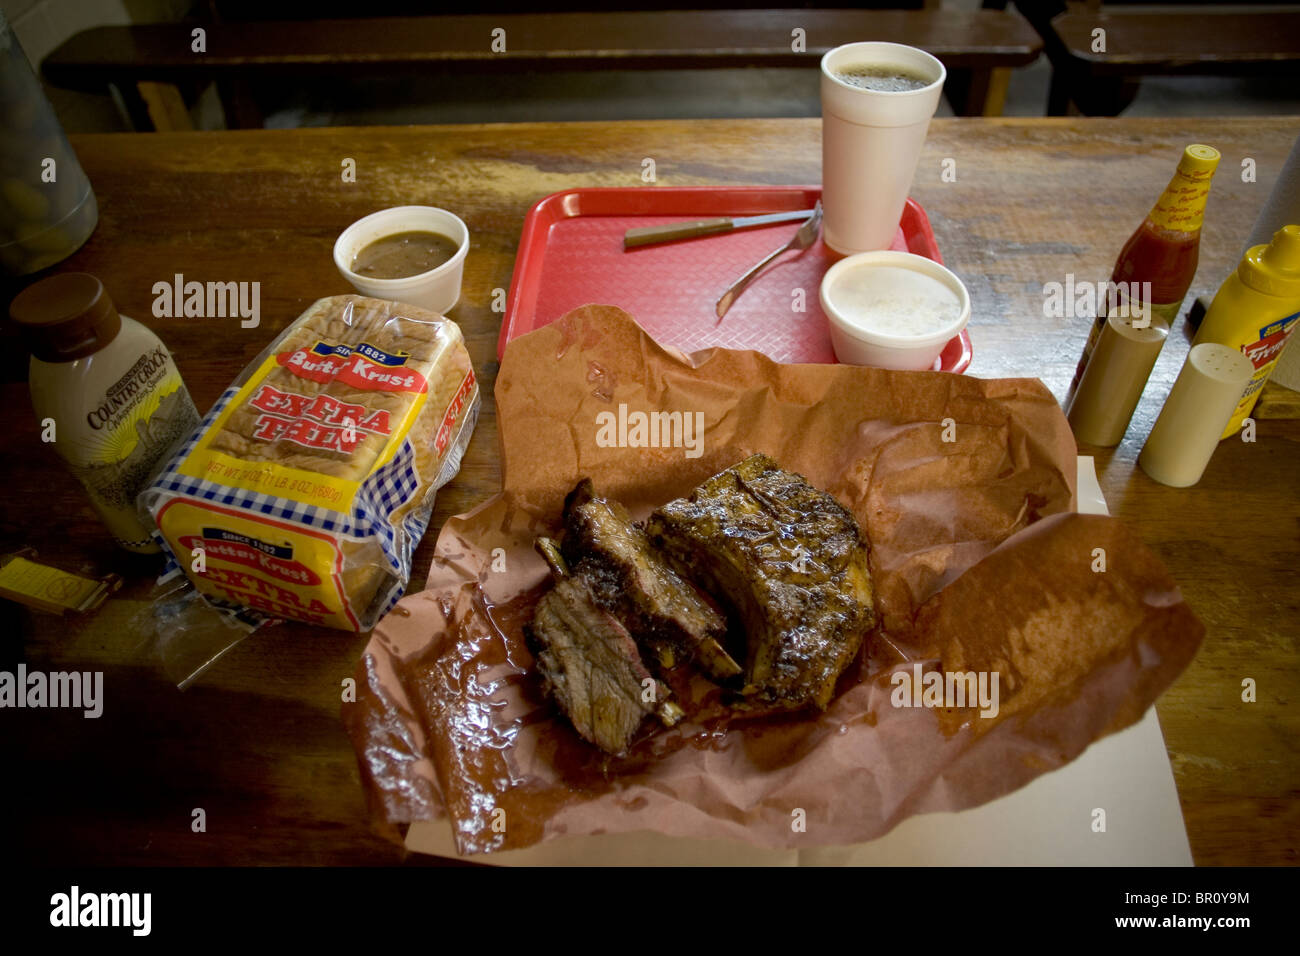 A meal ordered at a barbeque restaurant in Llano, Texas. - Stock Image